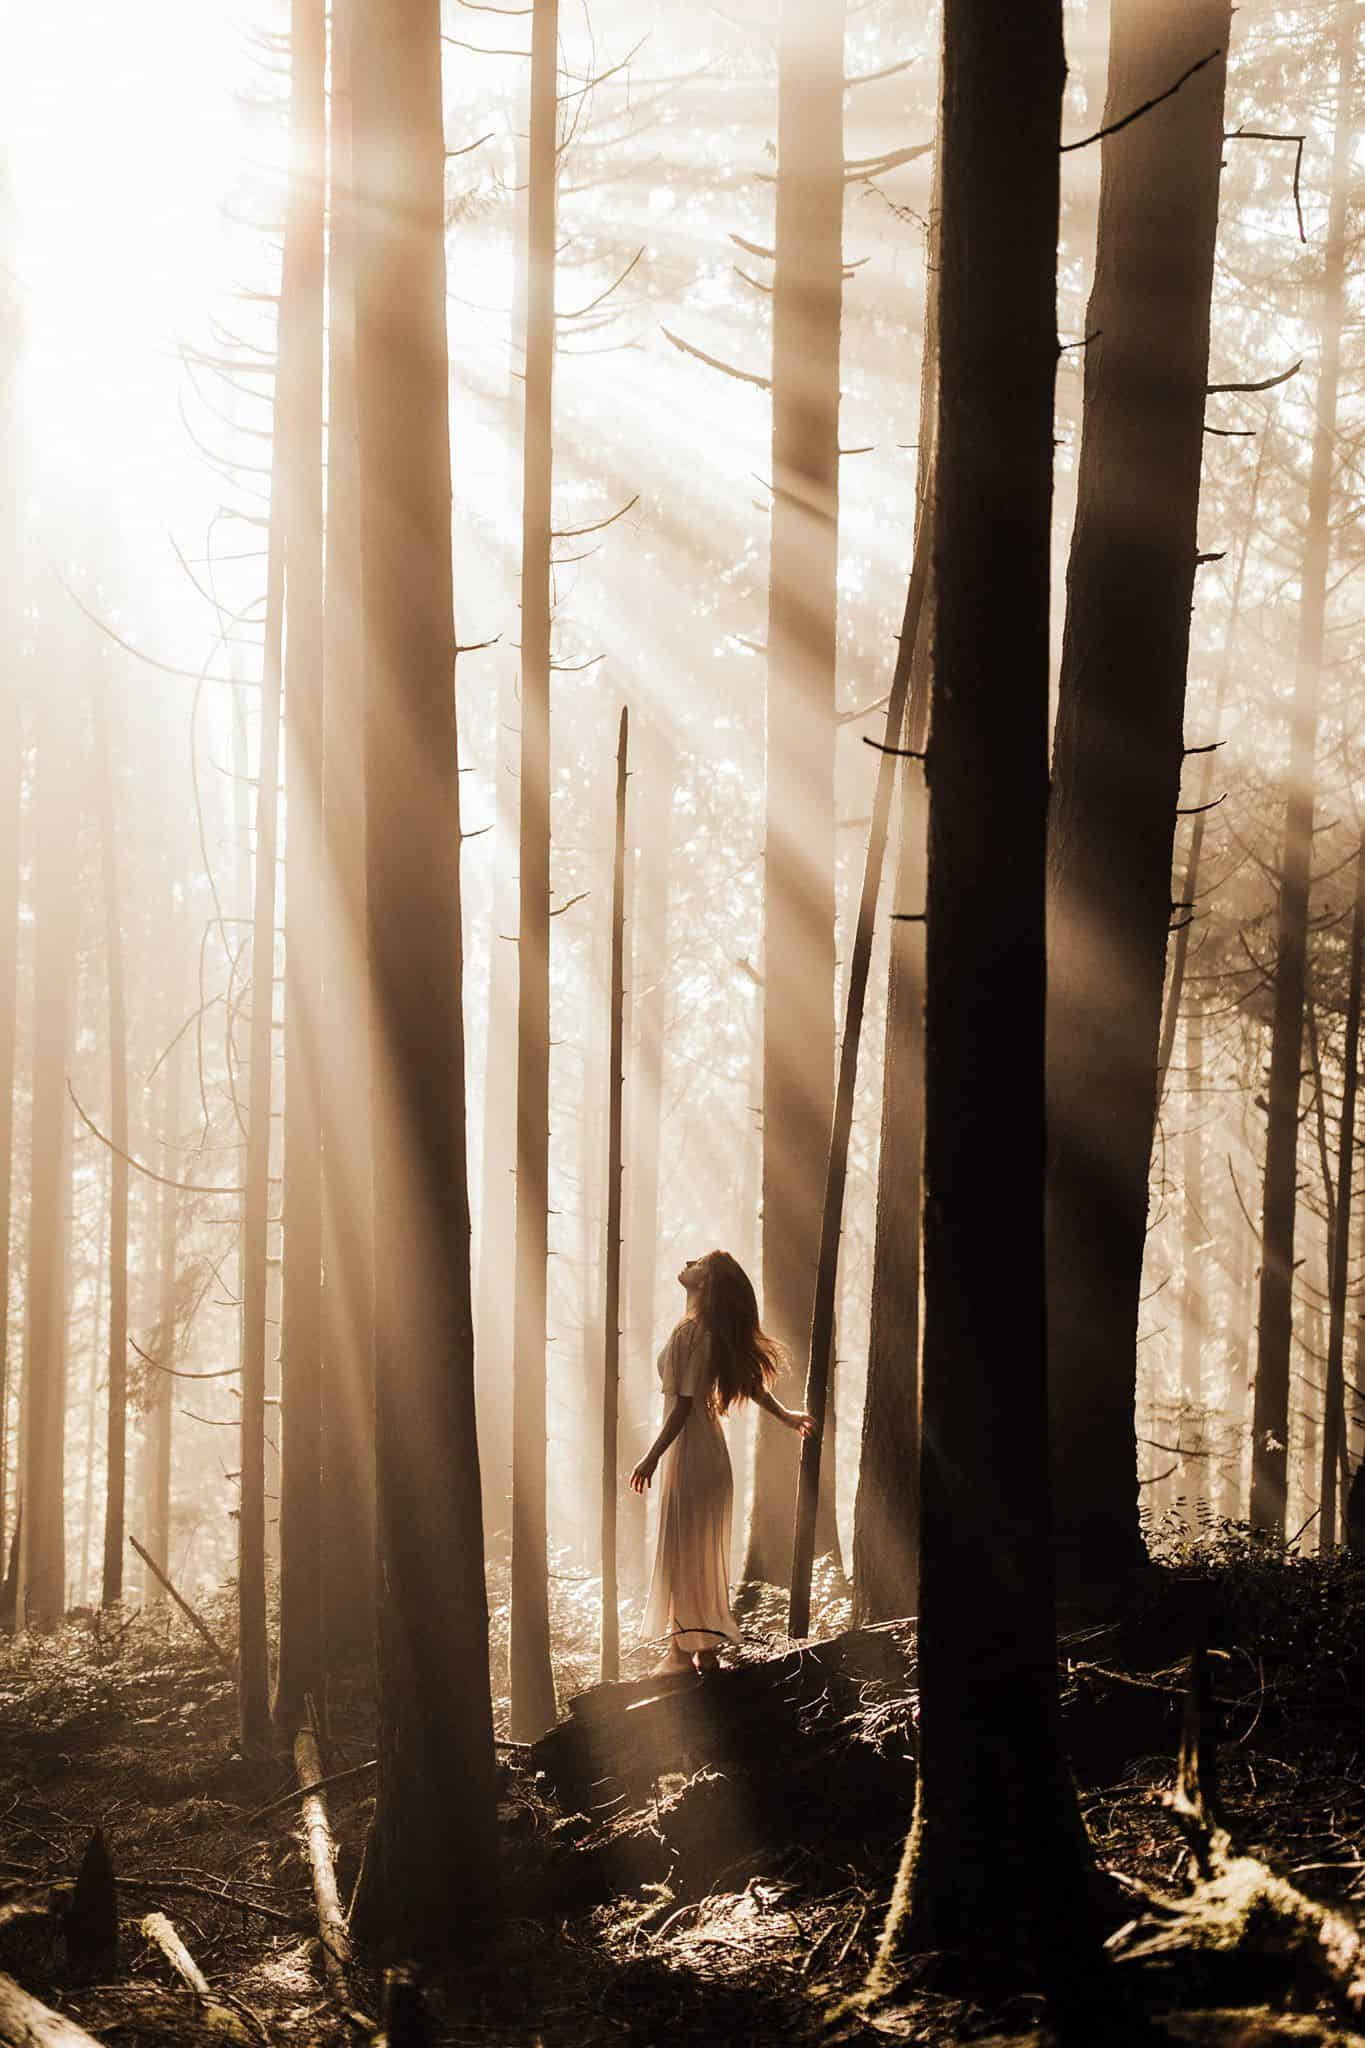 Sunbeams breaking through the trees in a forest and a person enjoy it